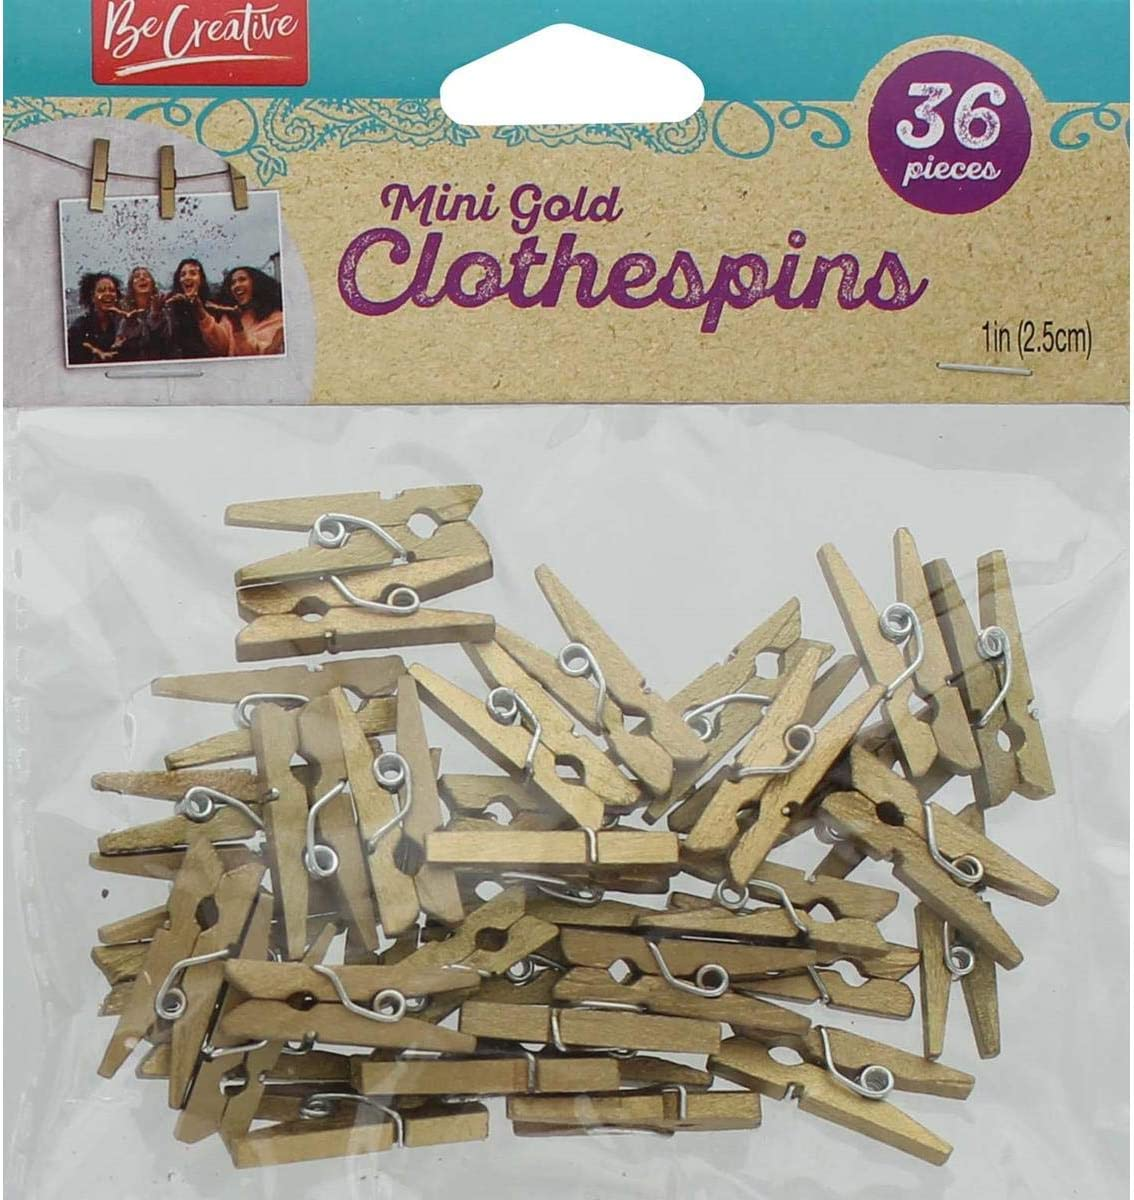 Leisure Arts Mini Year-end annual account Outlet SALE Clothespins Piece 36 Gold